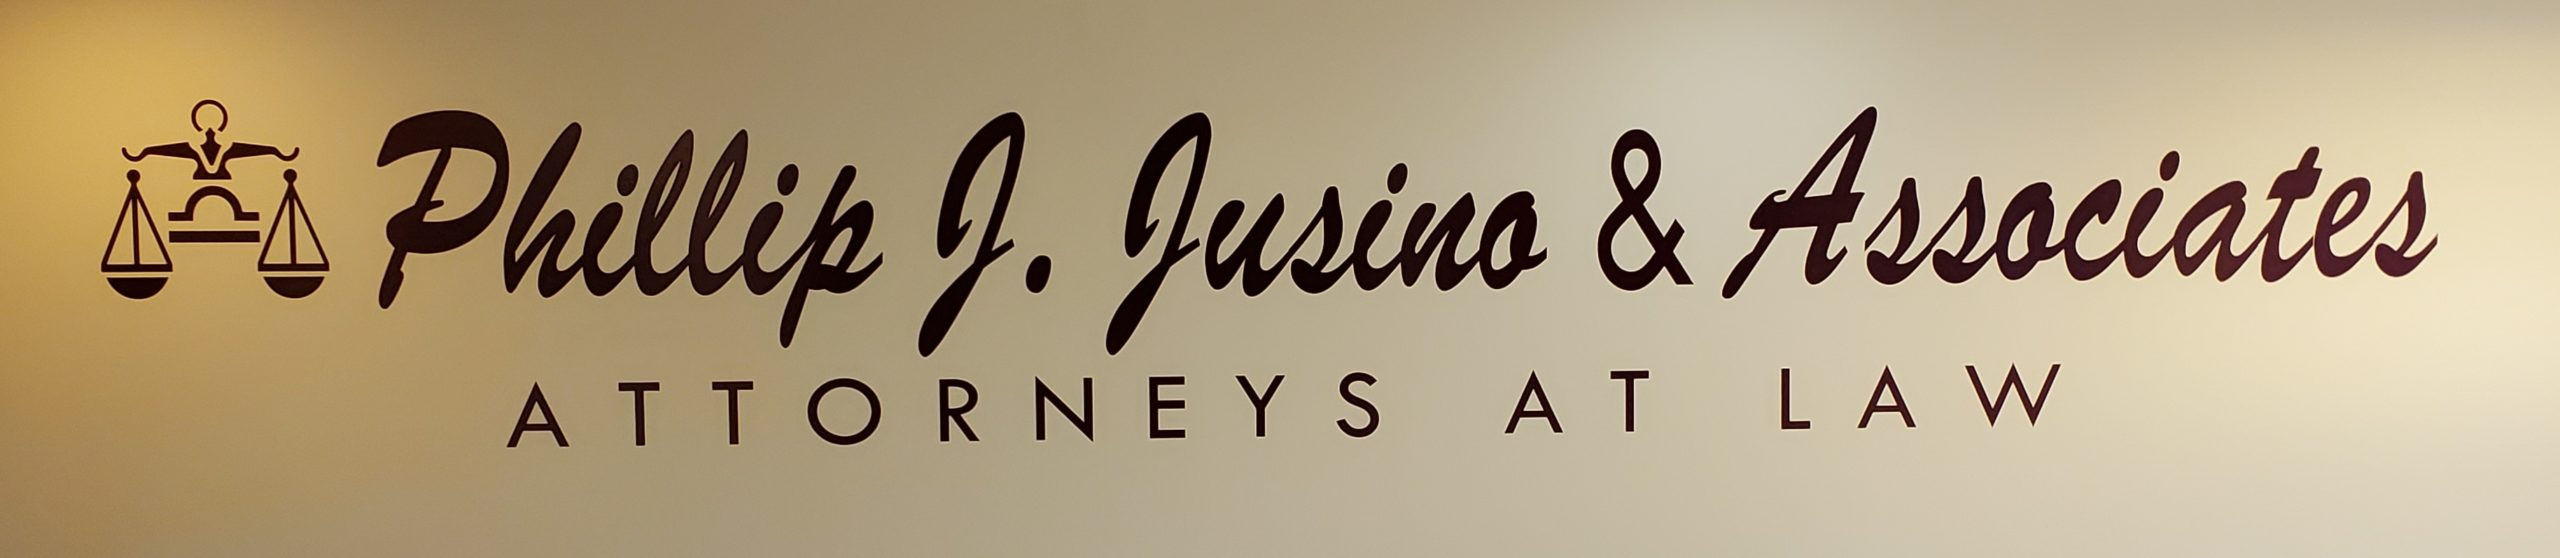 Phillip J. Jusino & Associates